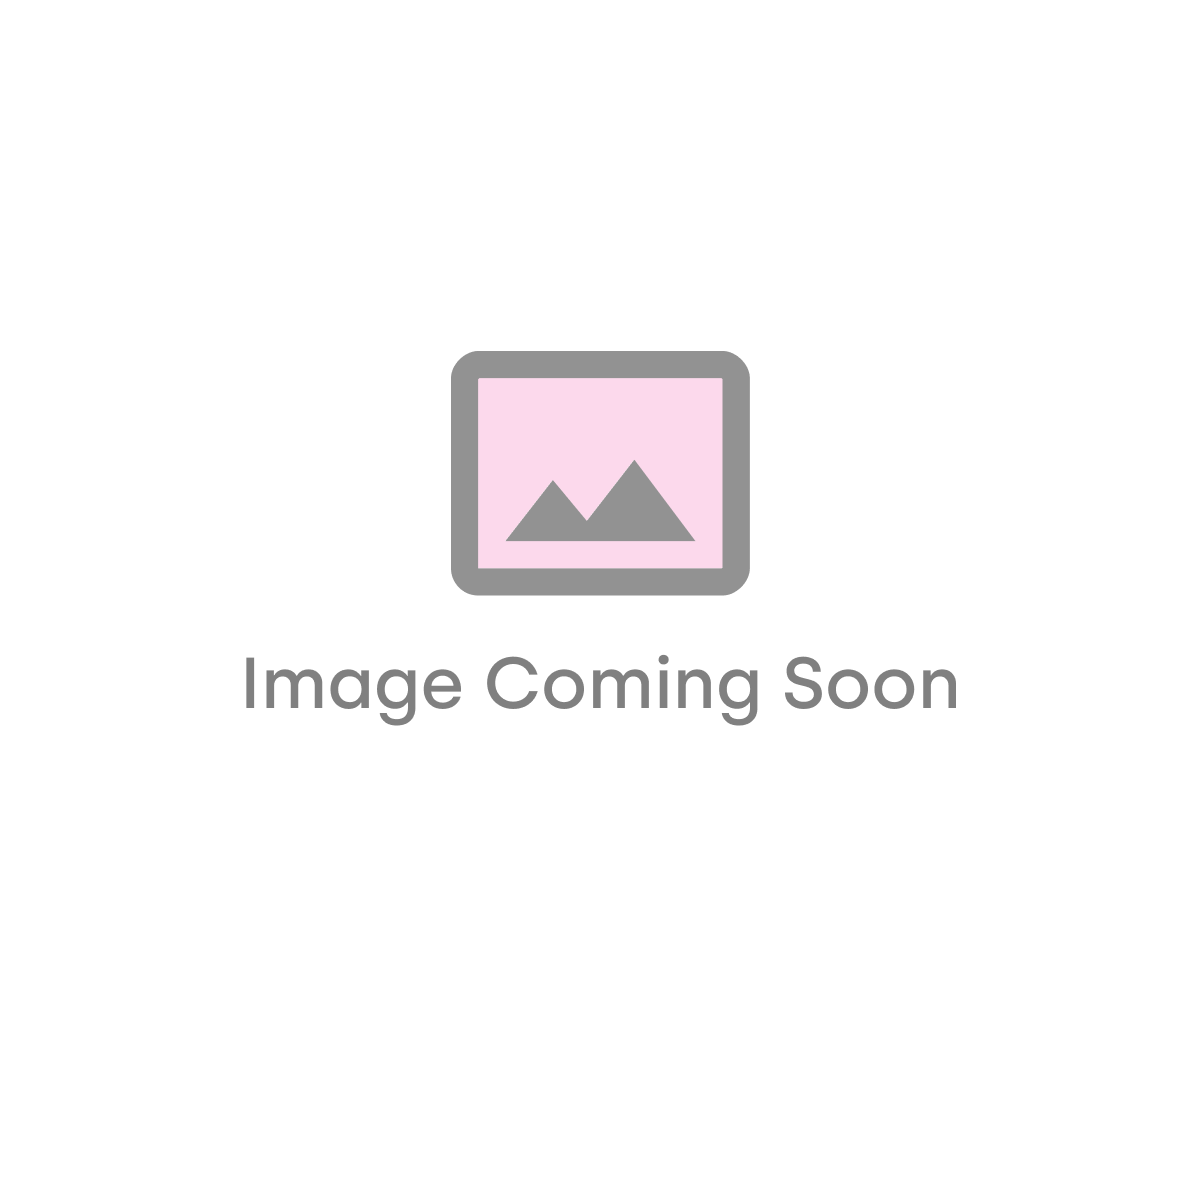 Elite 1.5 Bowl Inset or Undermounted Stainless Steel Kitchen Sink & Waste - Gold Finish (19017)